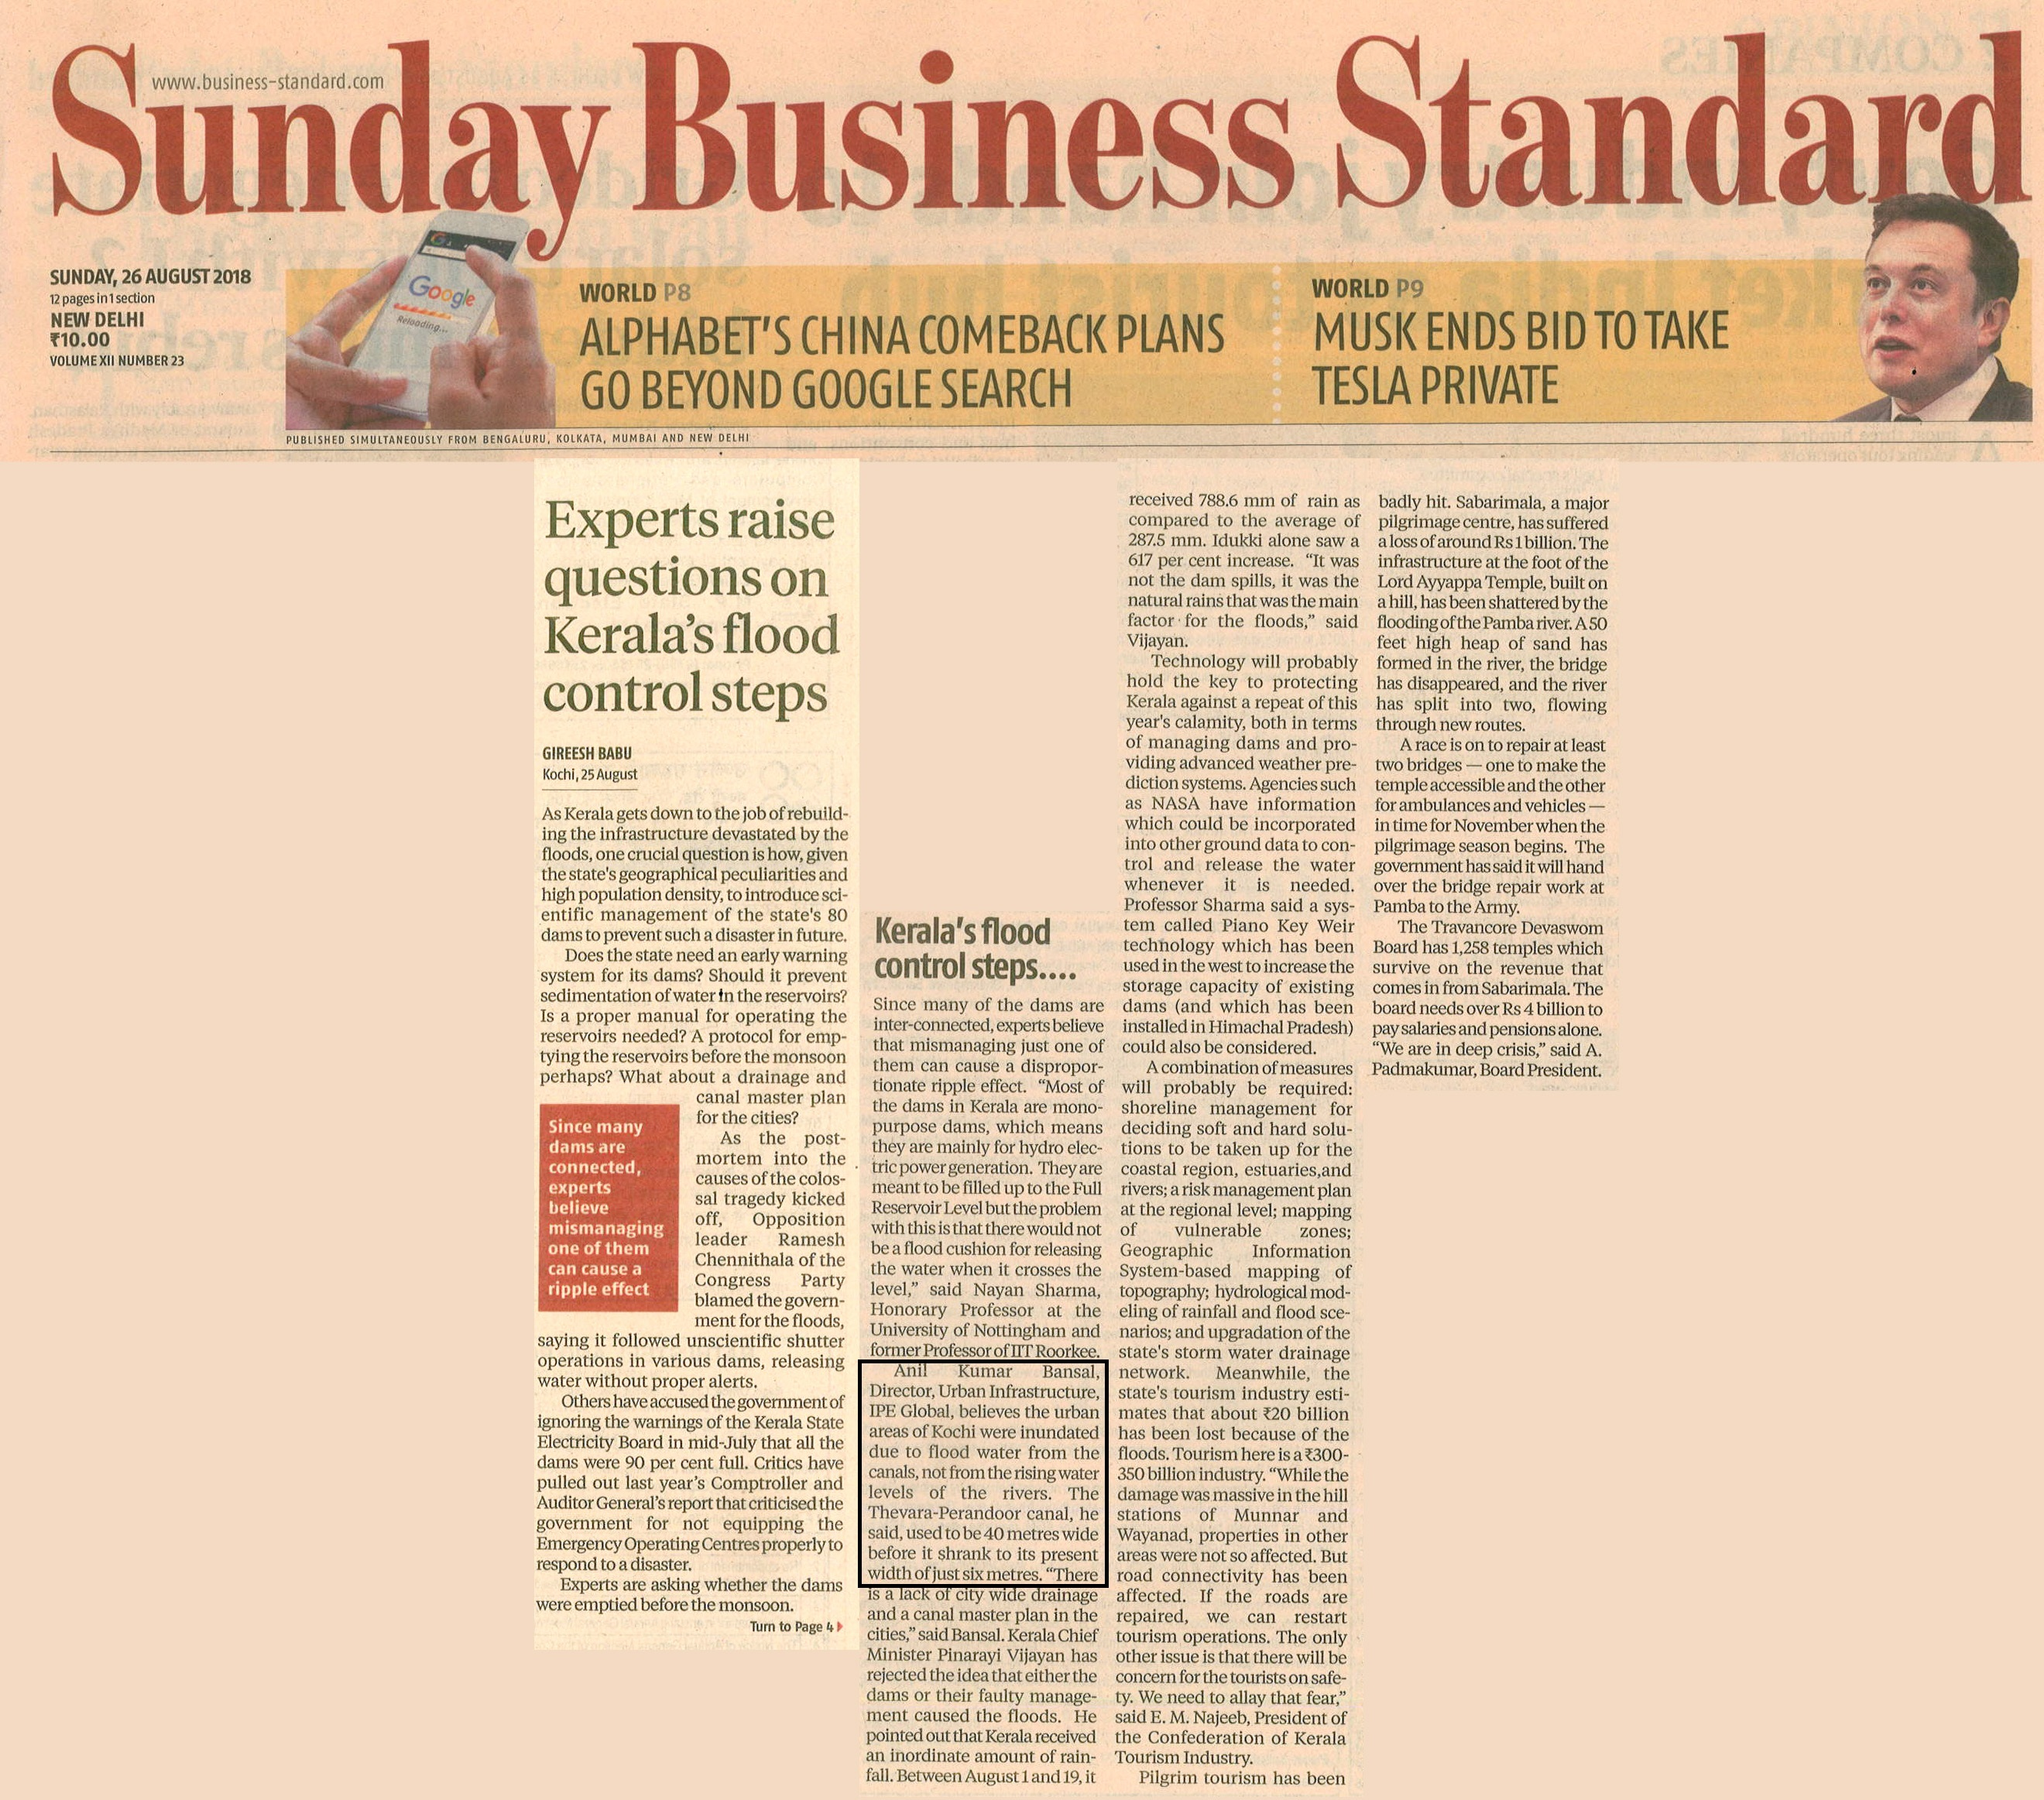 Anil Kumar Bansal features in Sunday Business Standard